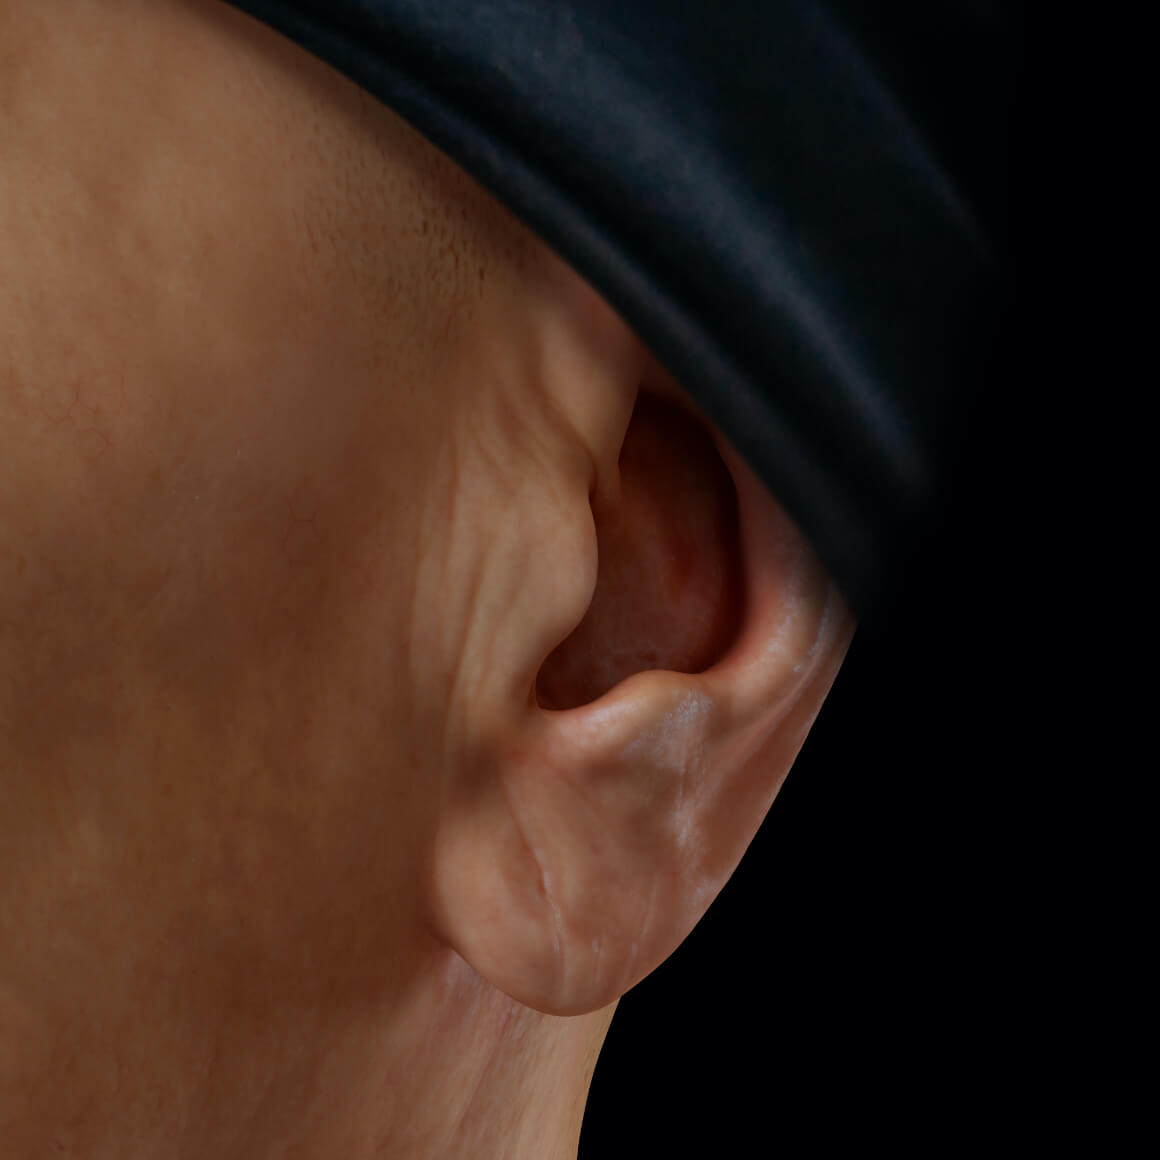 Left earlobe of a patient from Clinique Chloé positioned at an angle showing sagging skin and wrinkles